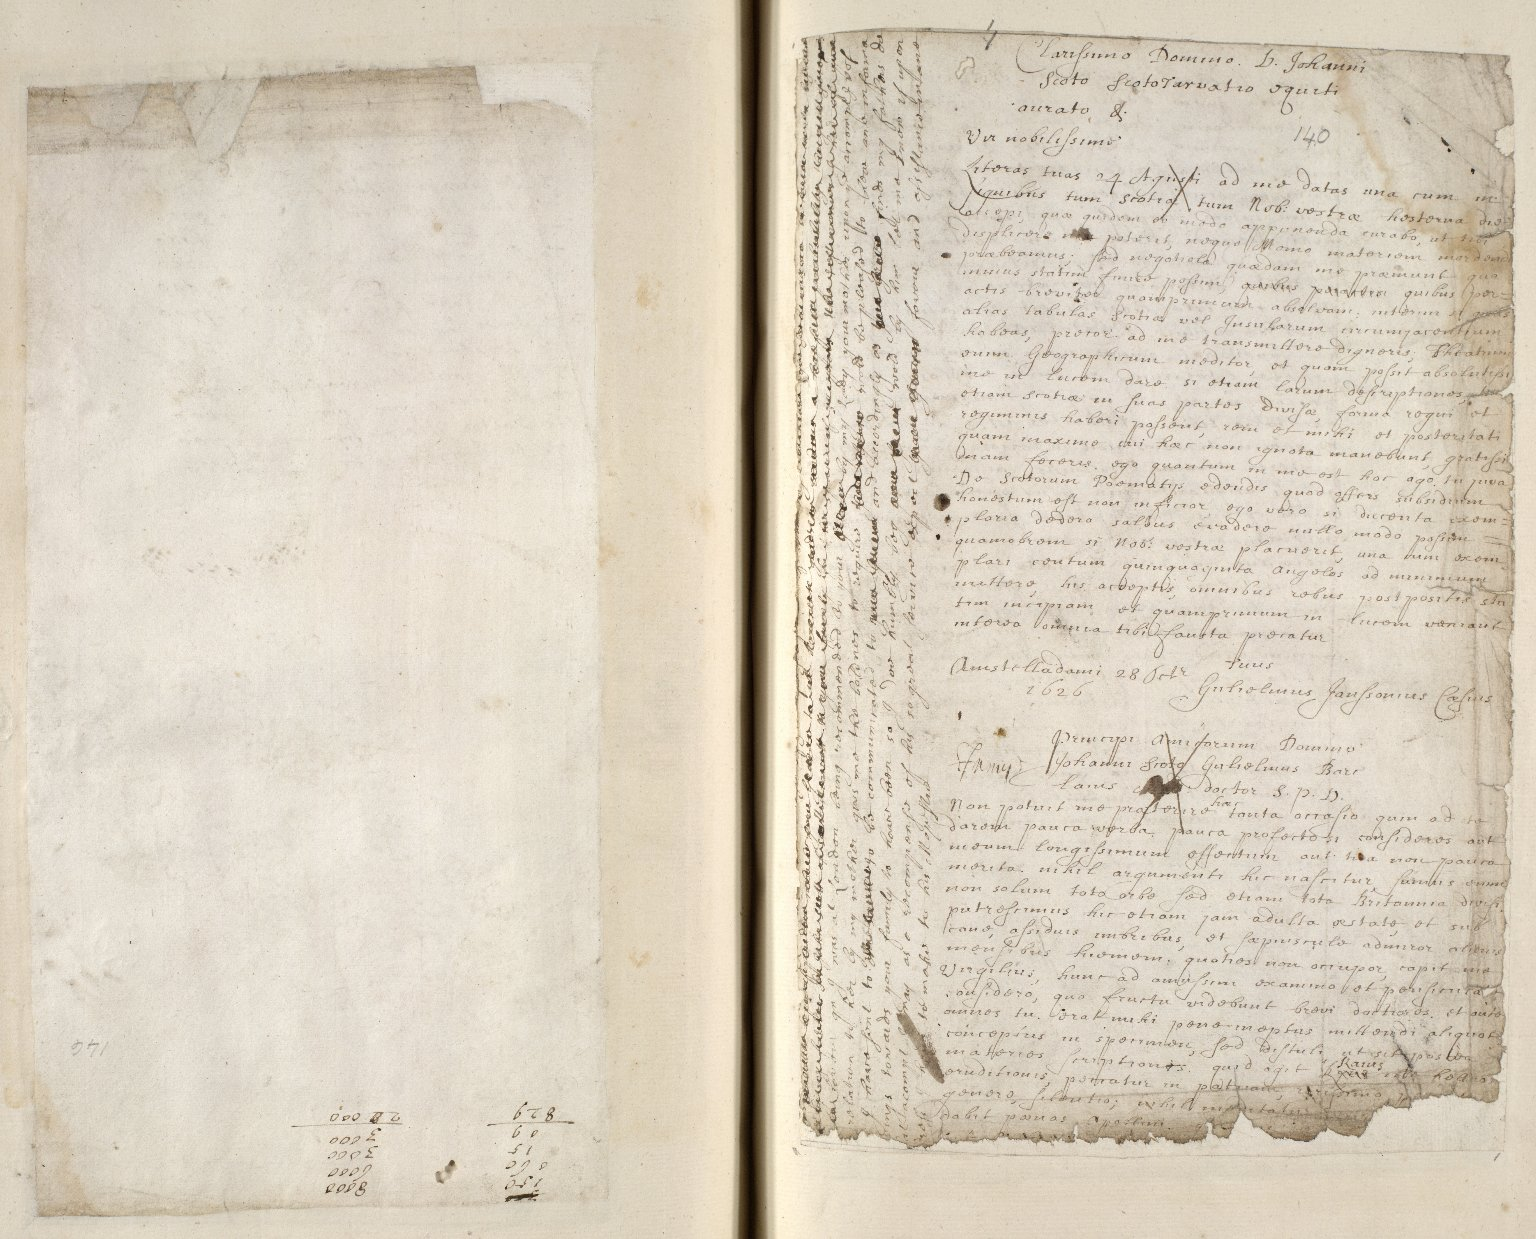 [A collection of ALS to Sir John Scot, Lord Scotstarvet, from W.J. and Joan Blaeu, Amsterdam] [08 of 27]